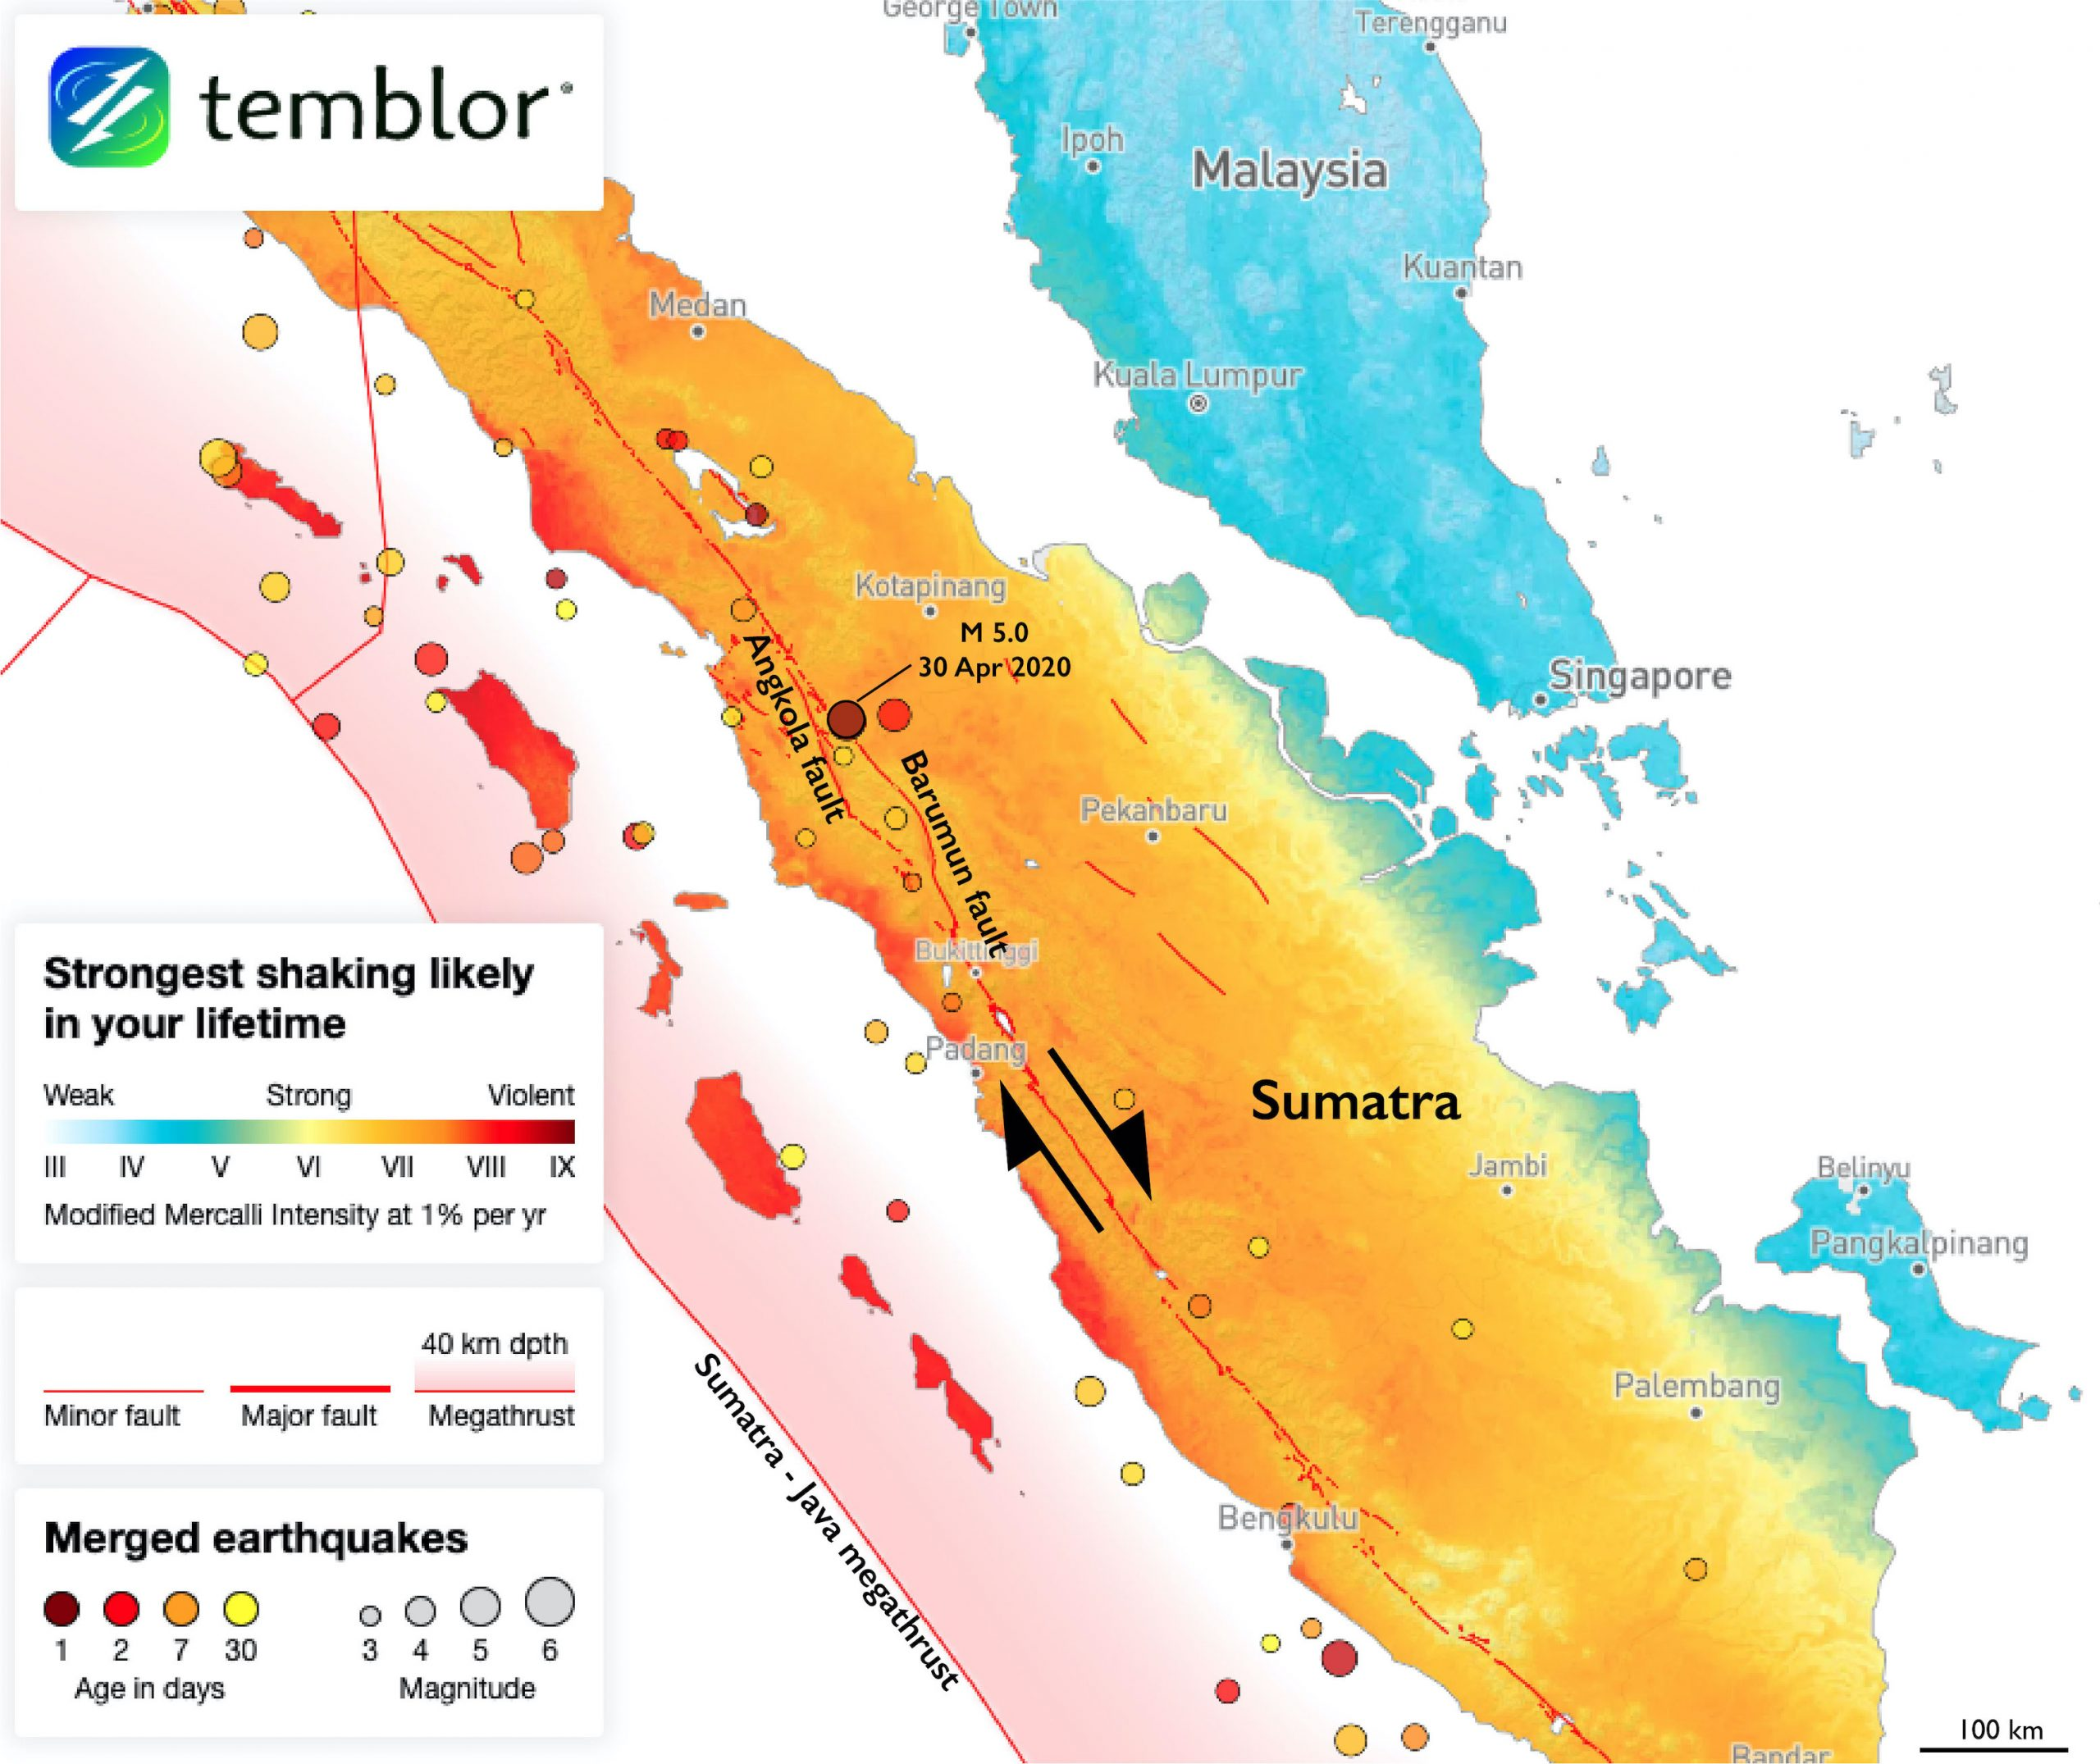 A M 5.0 earthquake occurred today near the town of Padangsidempuan, Indonesia. Sumatra is transected by the right-lateral Sumatran fault system. Today's quake occurred within a tectonically complex region between the Barumun and Angkola segments.